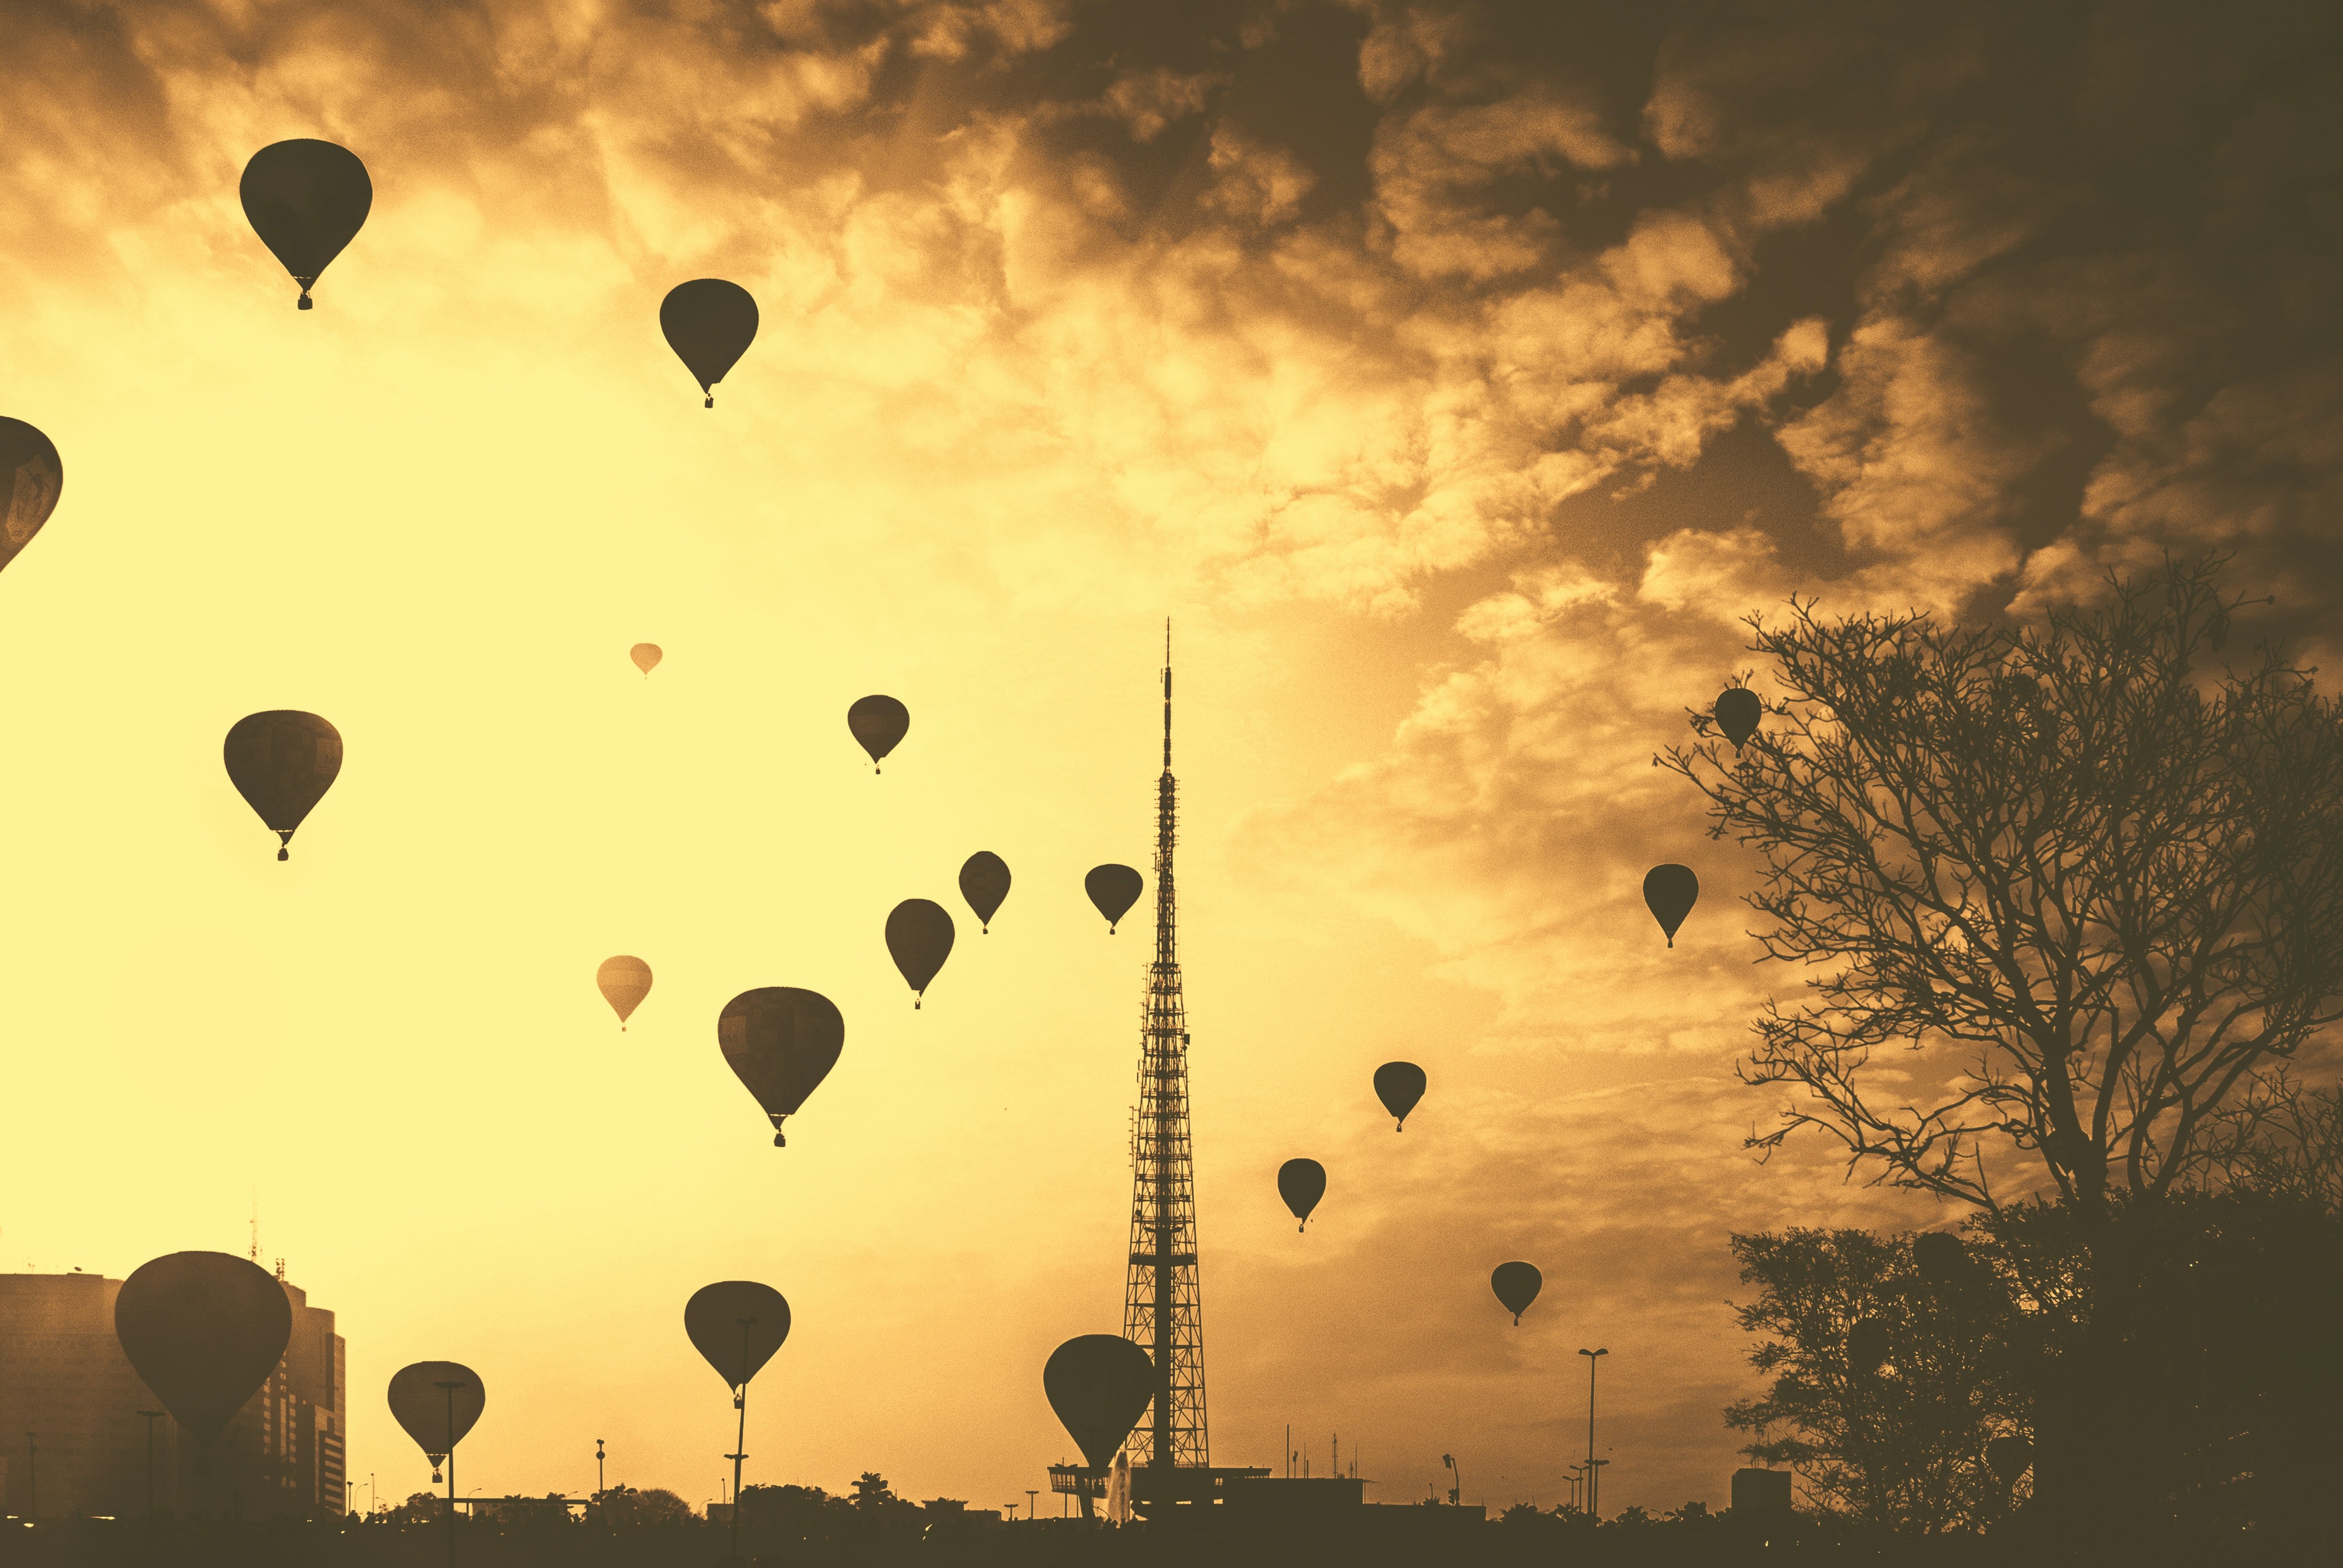 silhouette hot air balloons under cloudy skies during golden hour